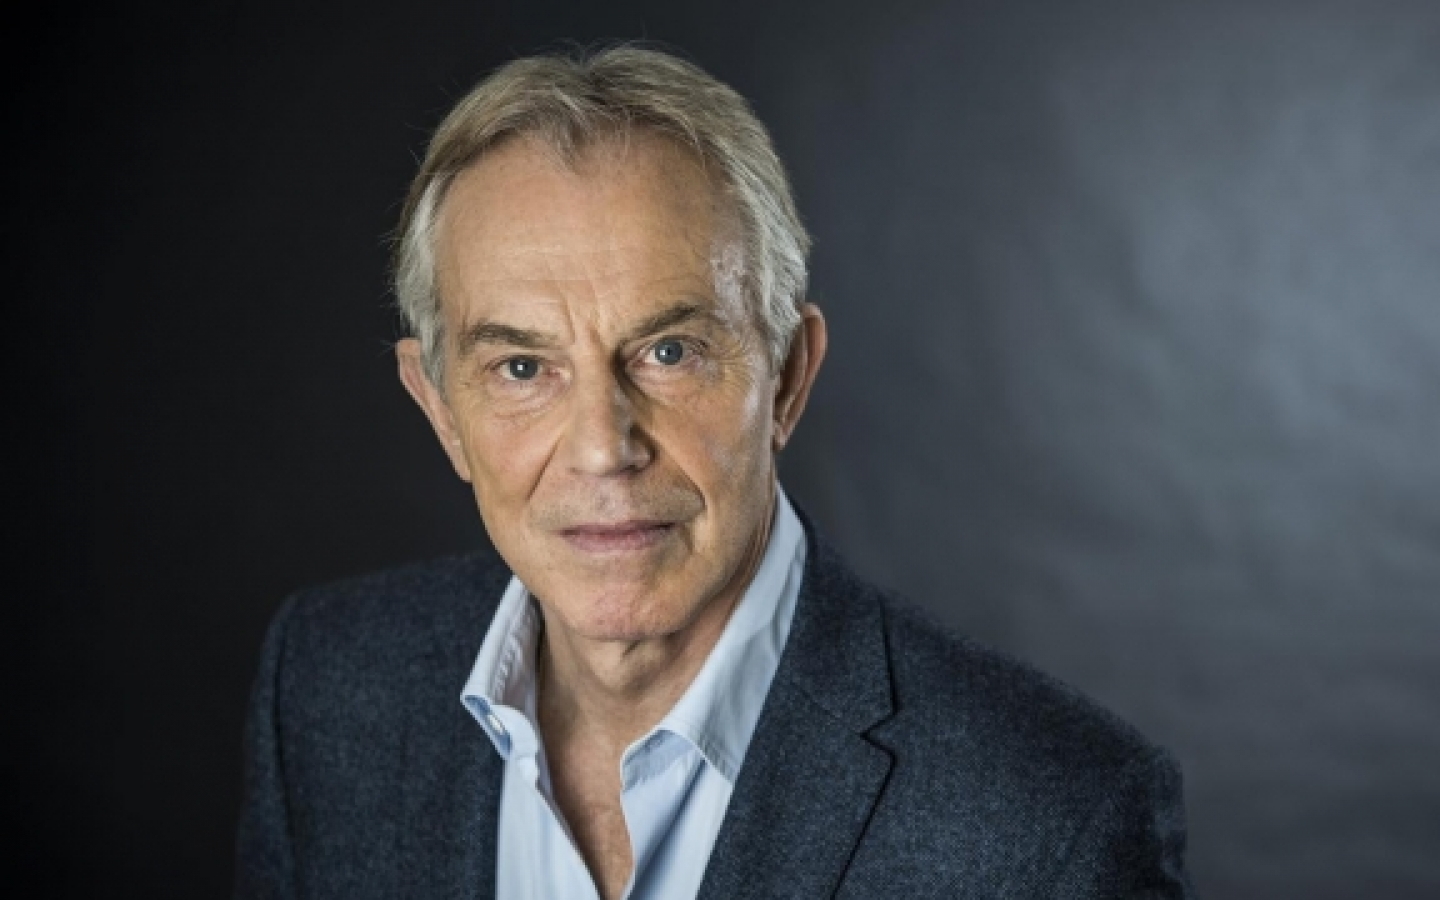 A Message From Tony Blair: Easing the Lockdown | Institute for Global Change